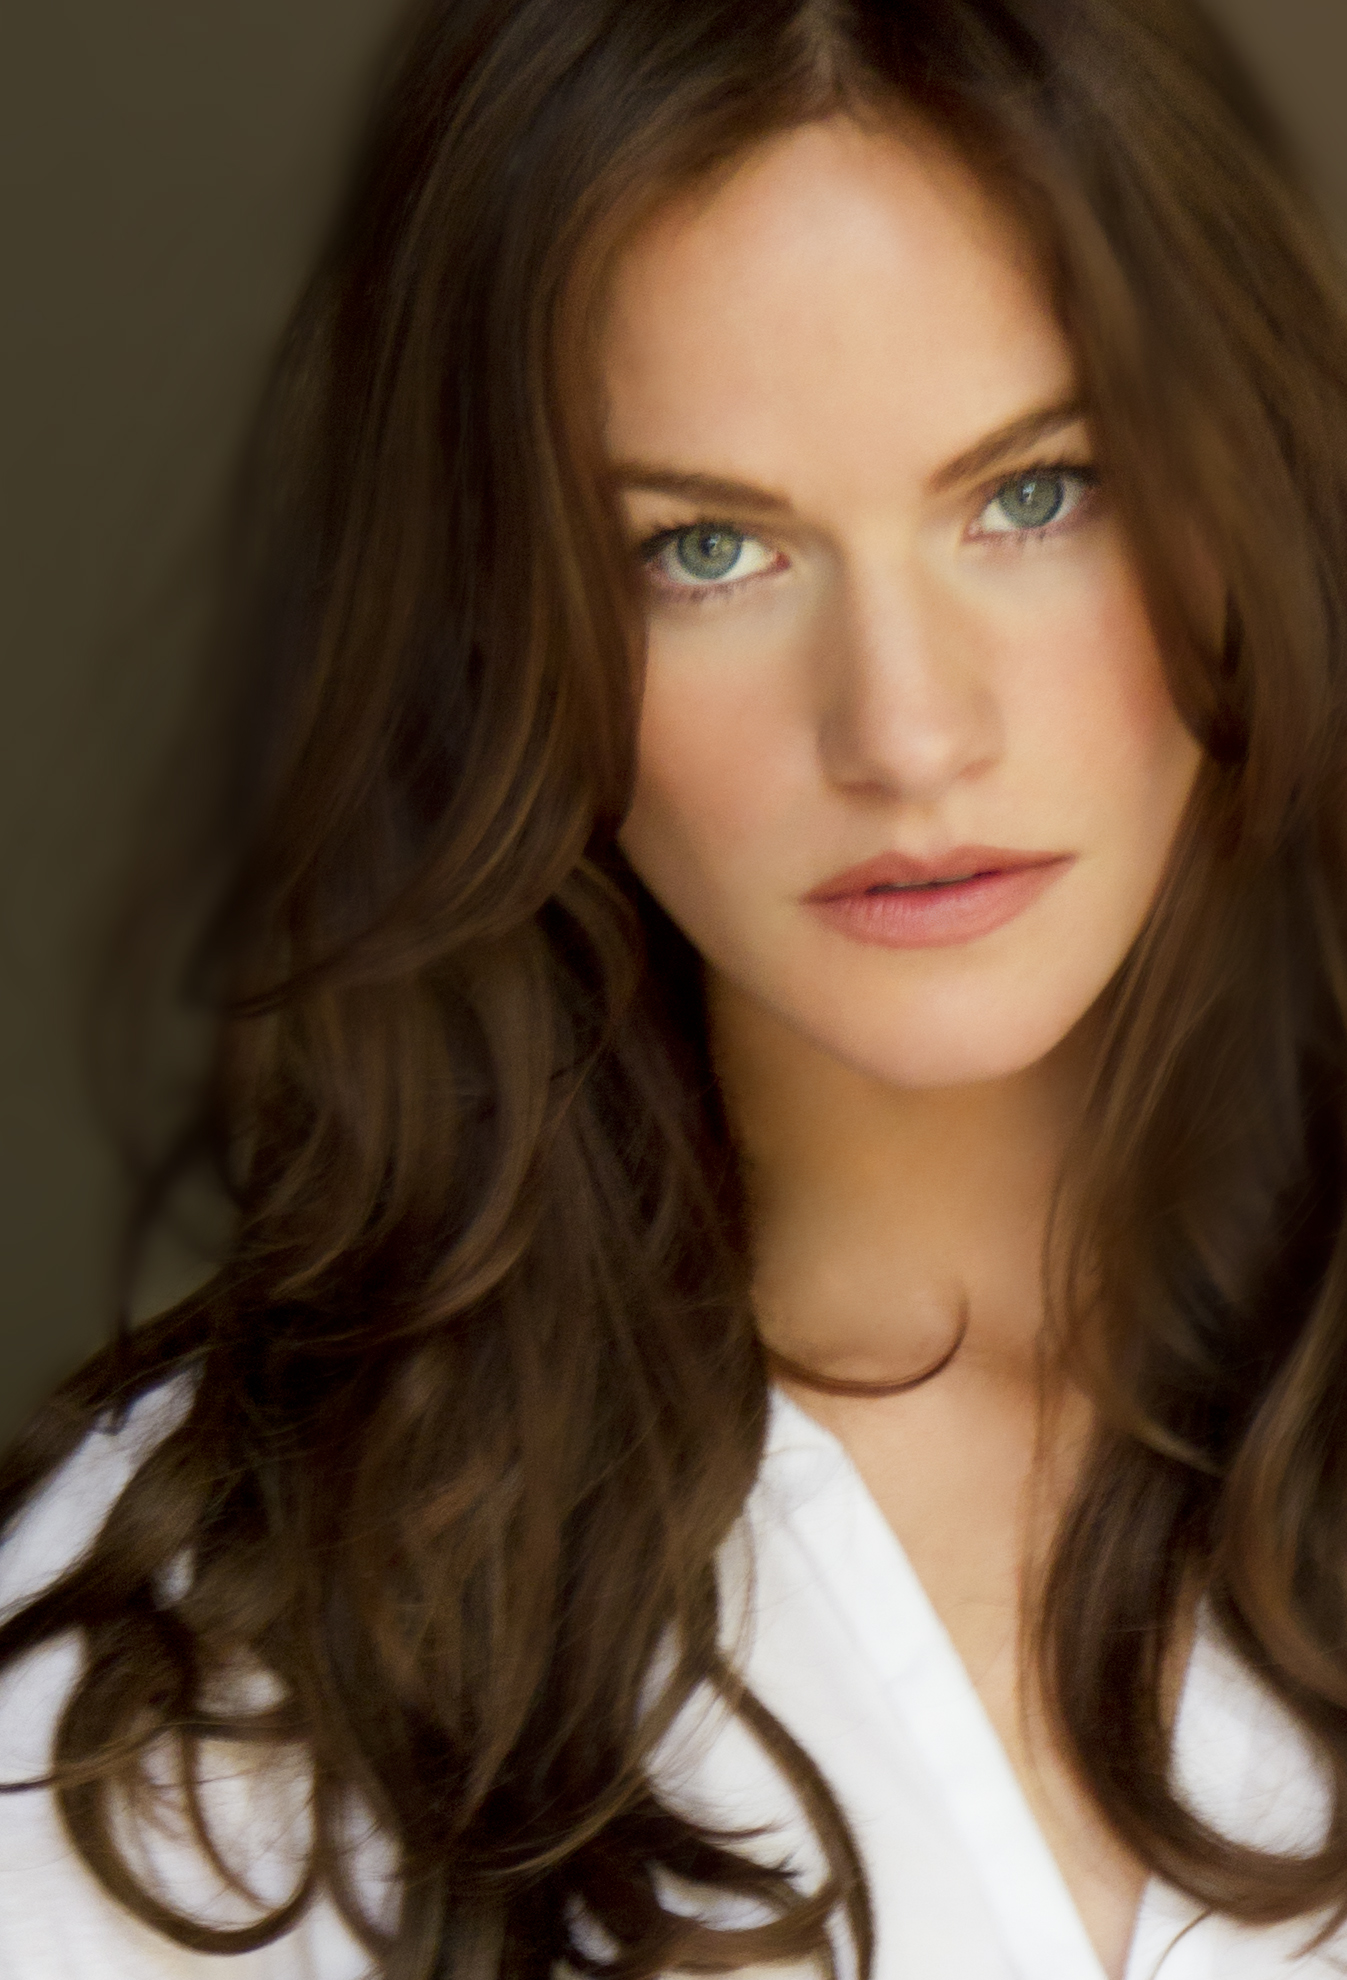 Kelly Overton (actress)